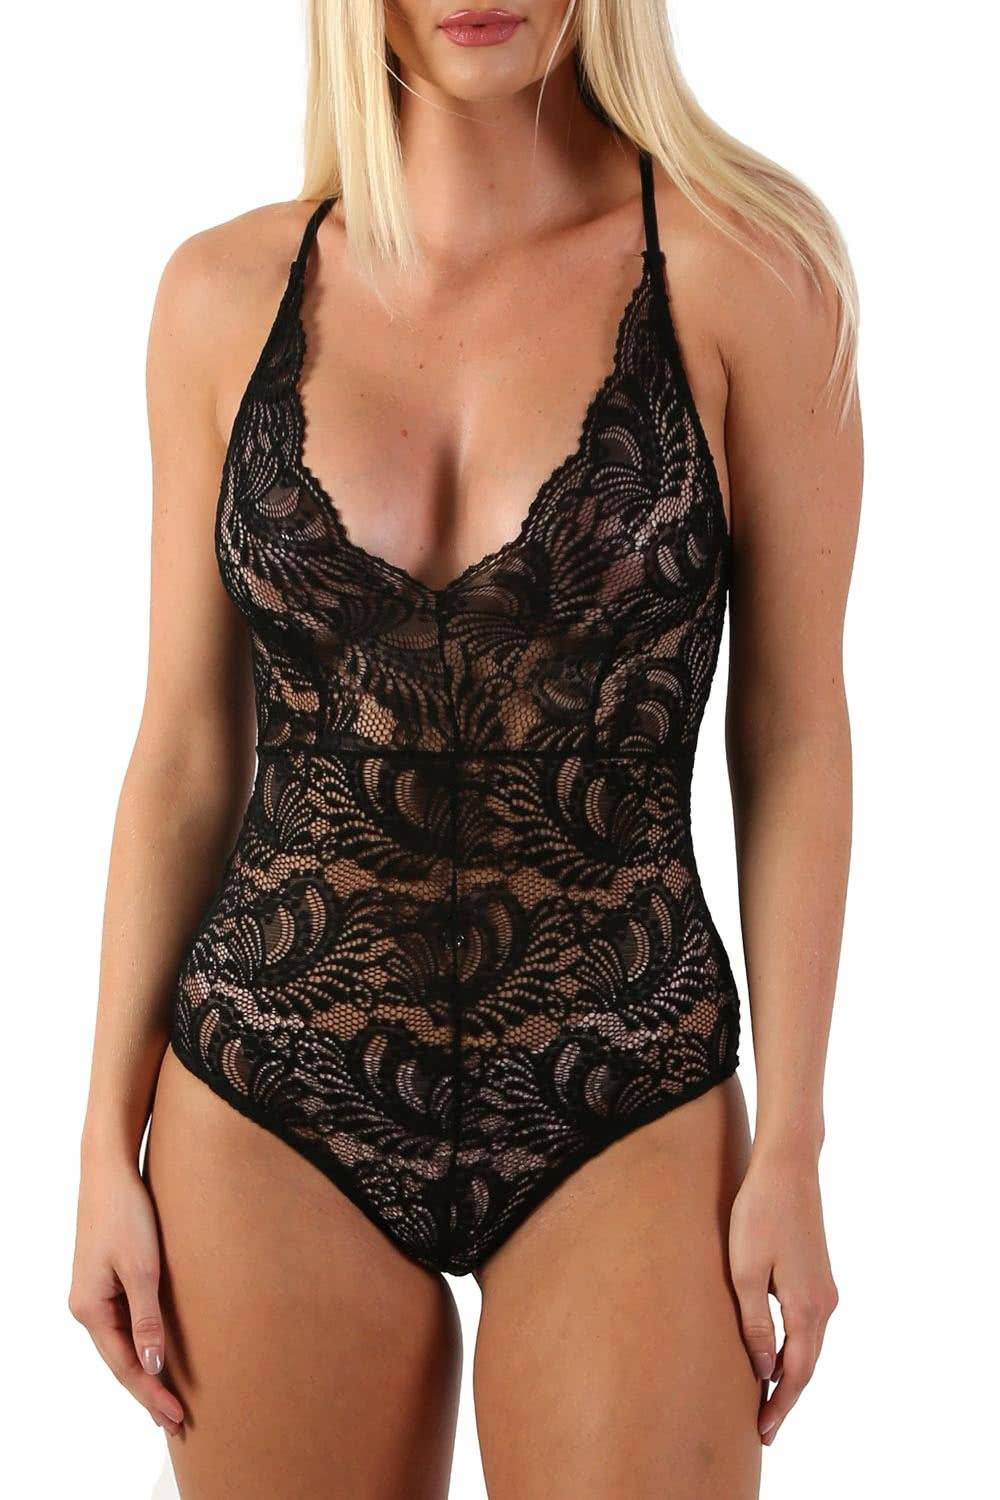 Tops - Sheer Lace Cross Back Bodysuit In Black